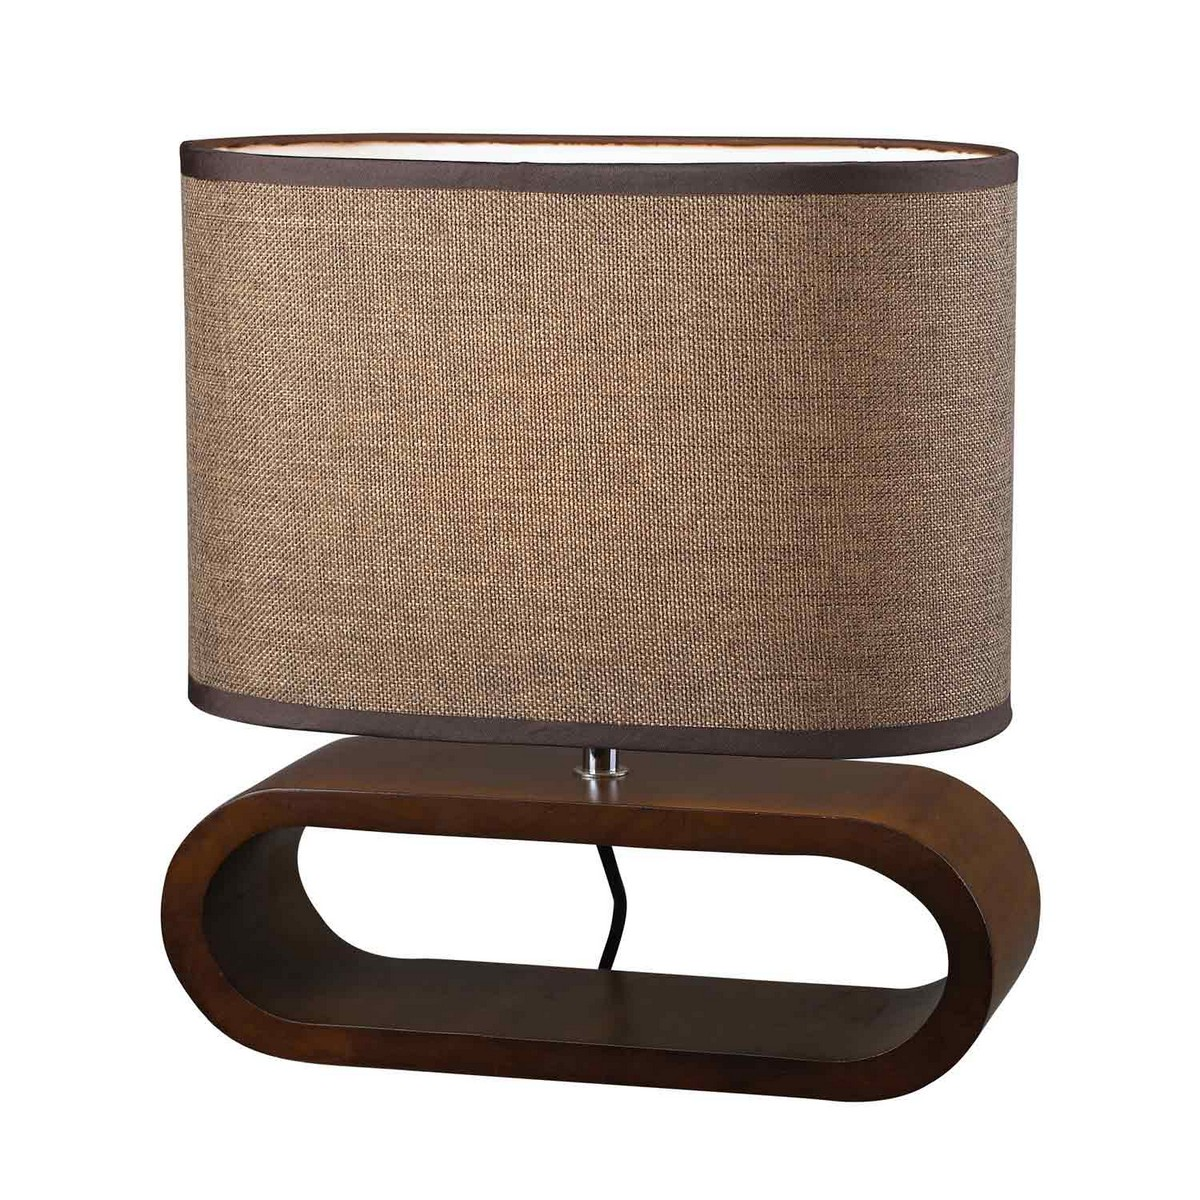 Elk Lighting D153 Table Lamp - Bennford Natural Stain